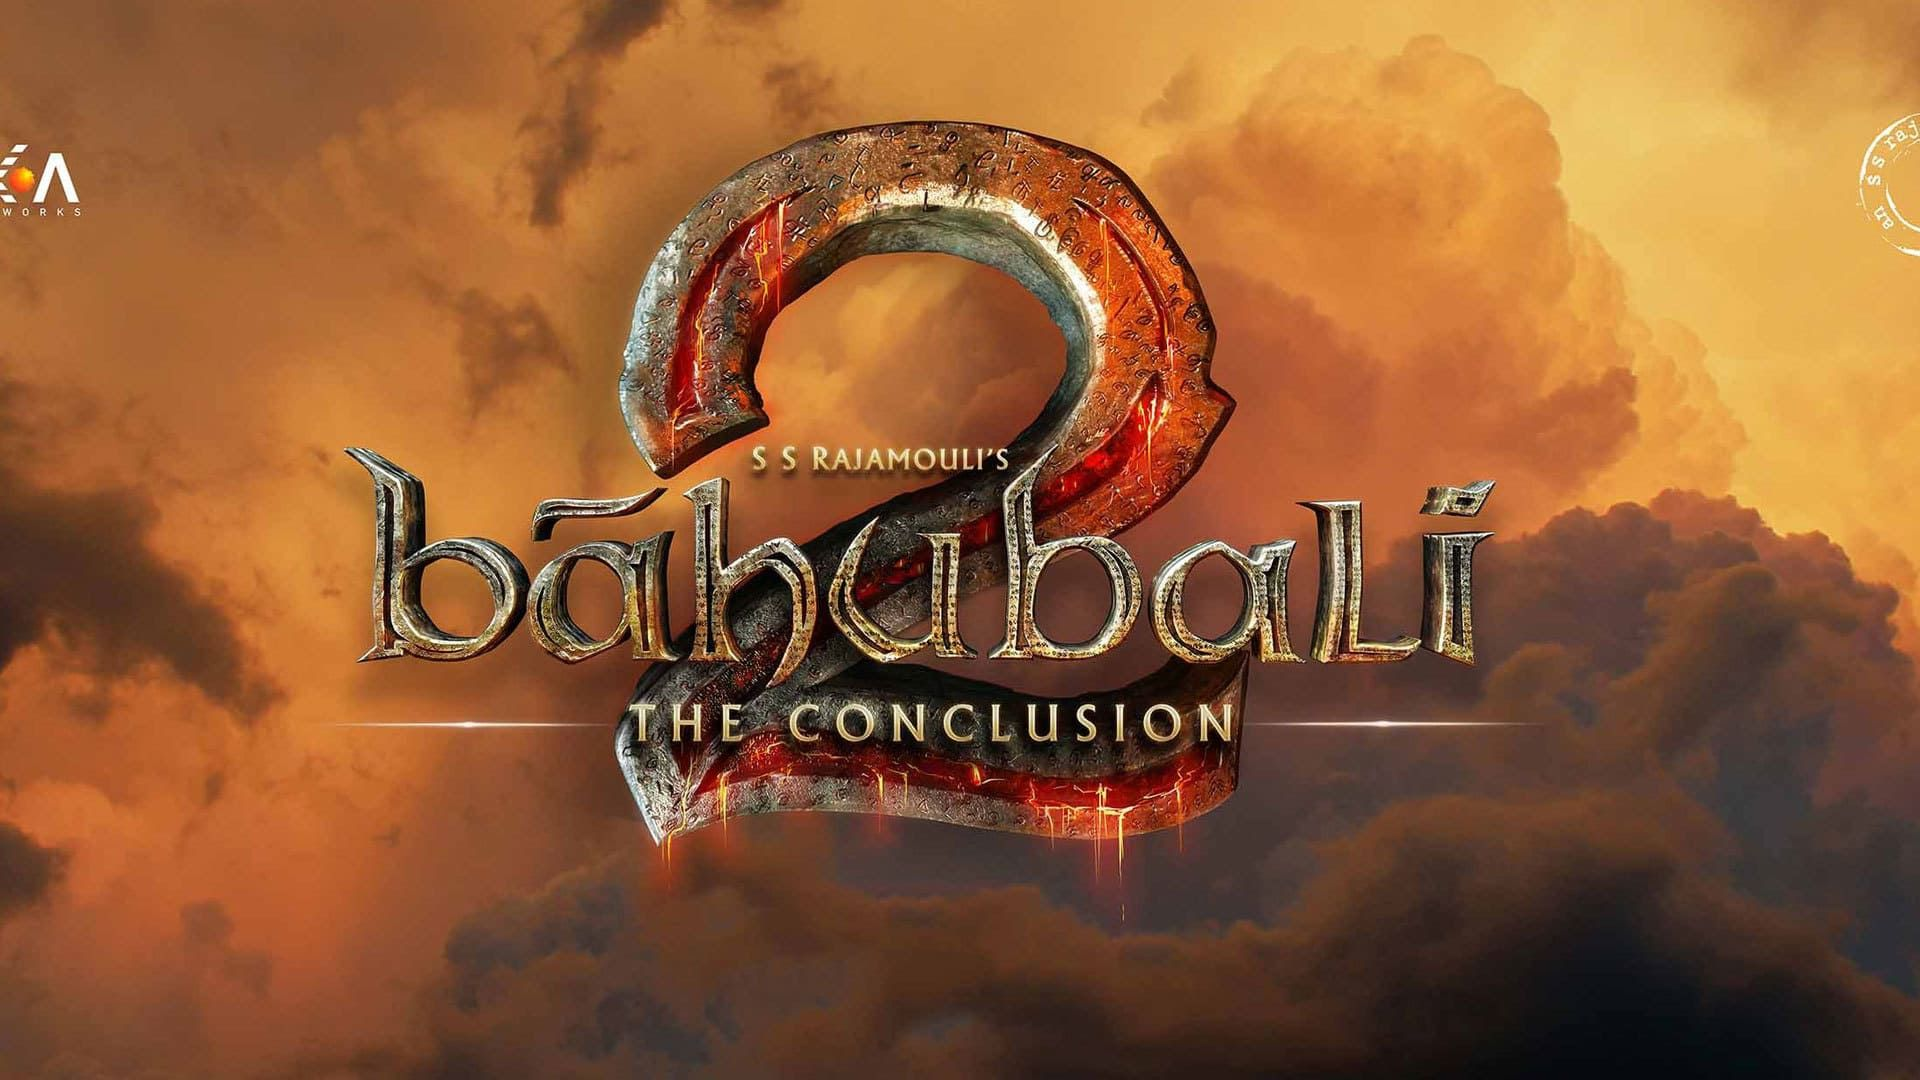 Hd wallpaper of bahubali 2 - Hd Wallpaper So Why Kattappa Killed Bahubali Is Out With Release Of Bahubali 2 Http